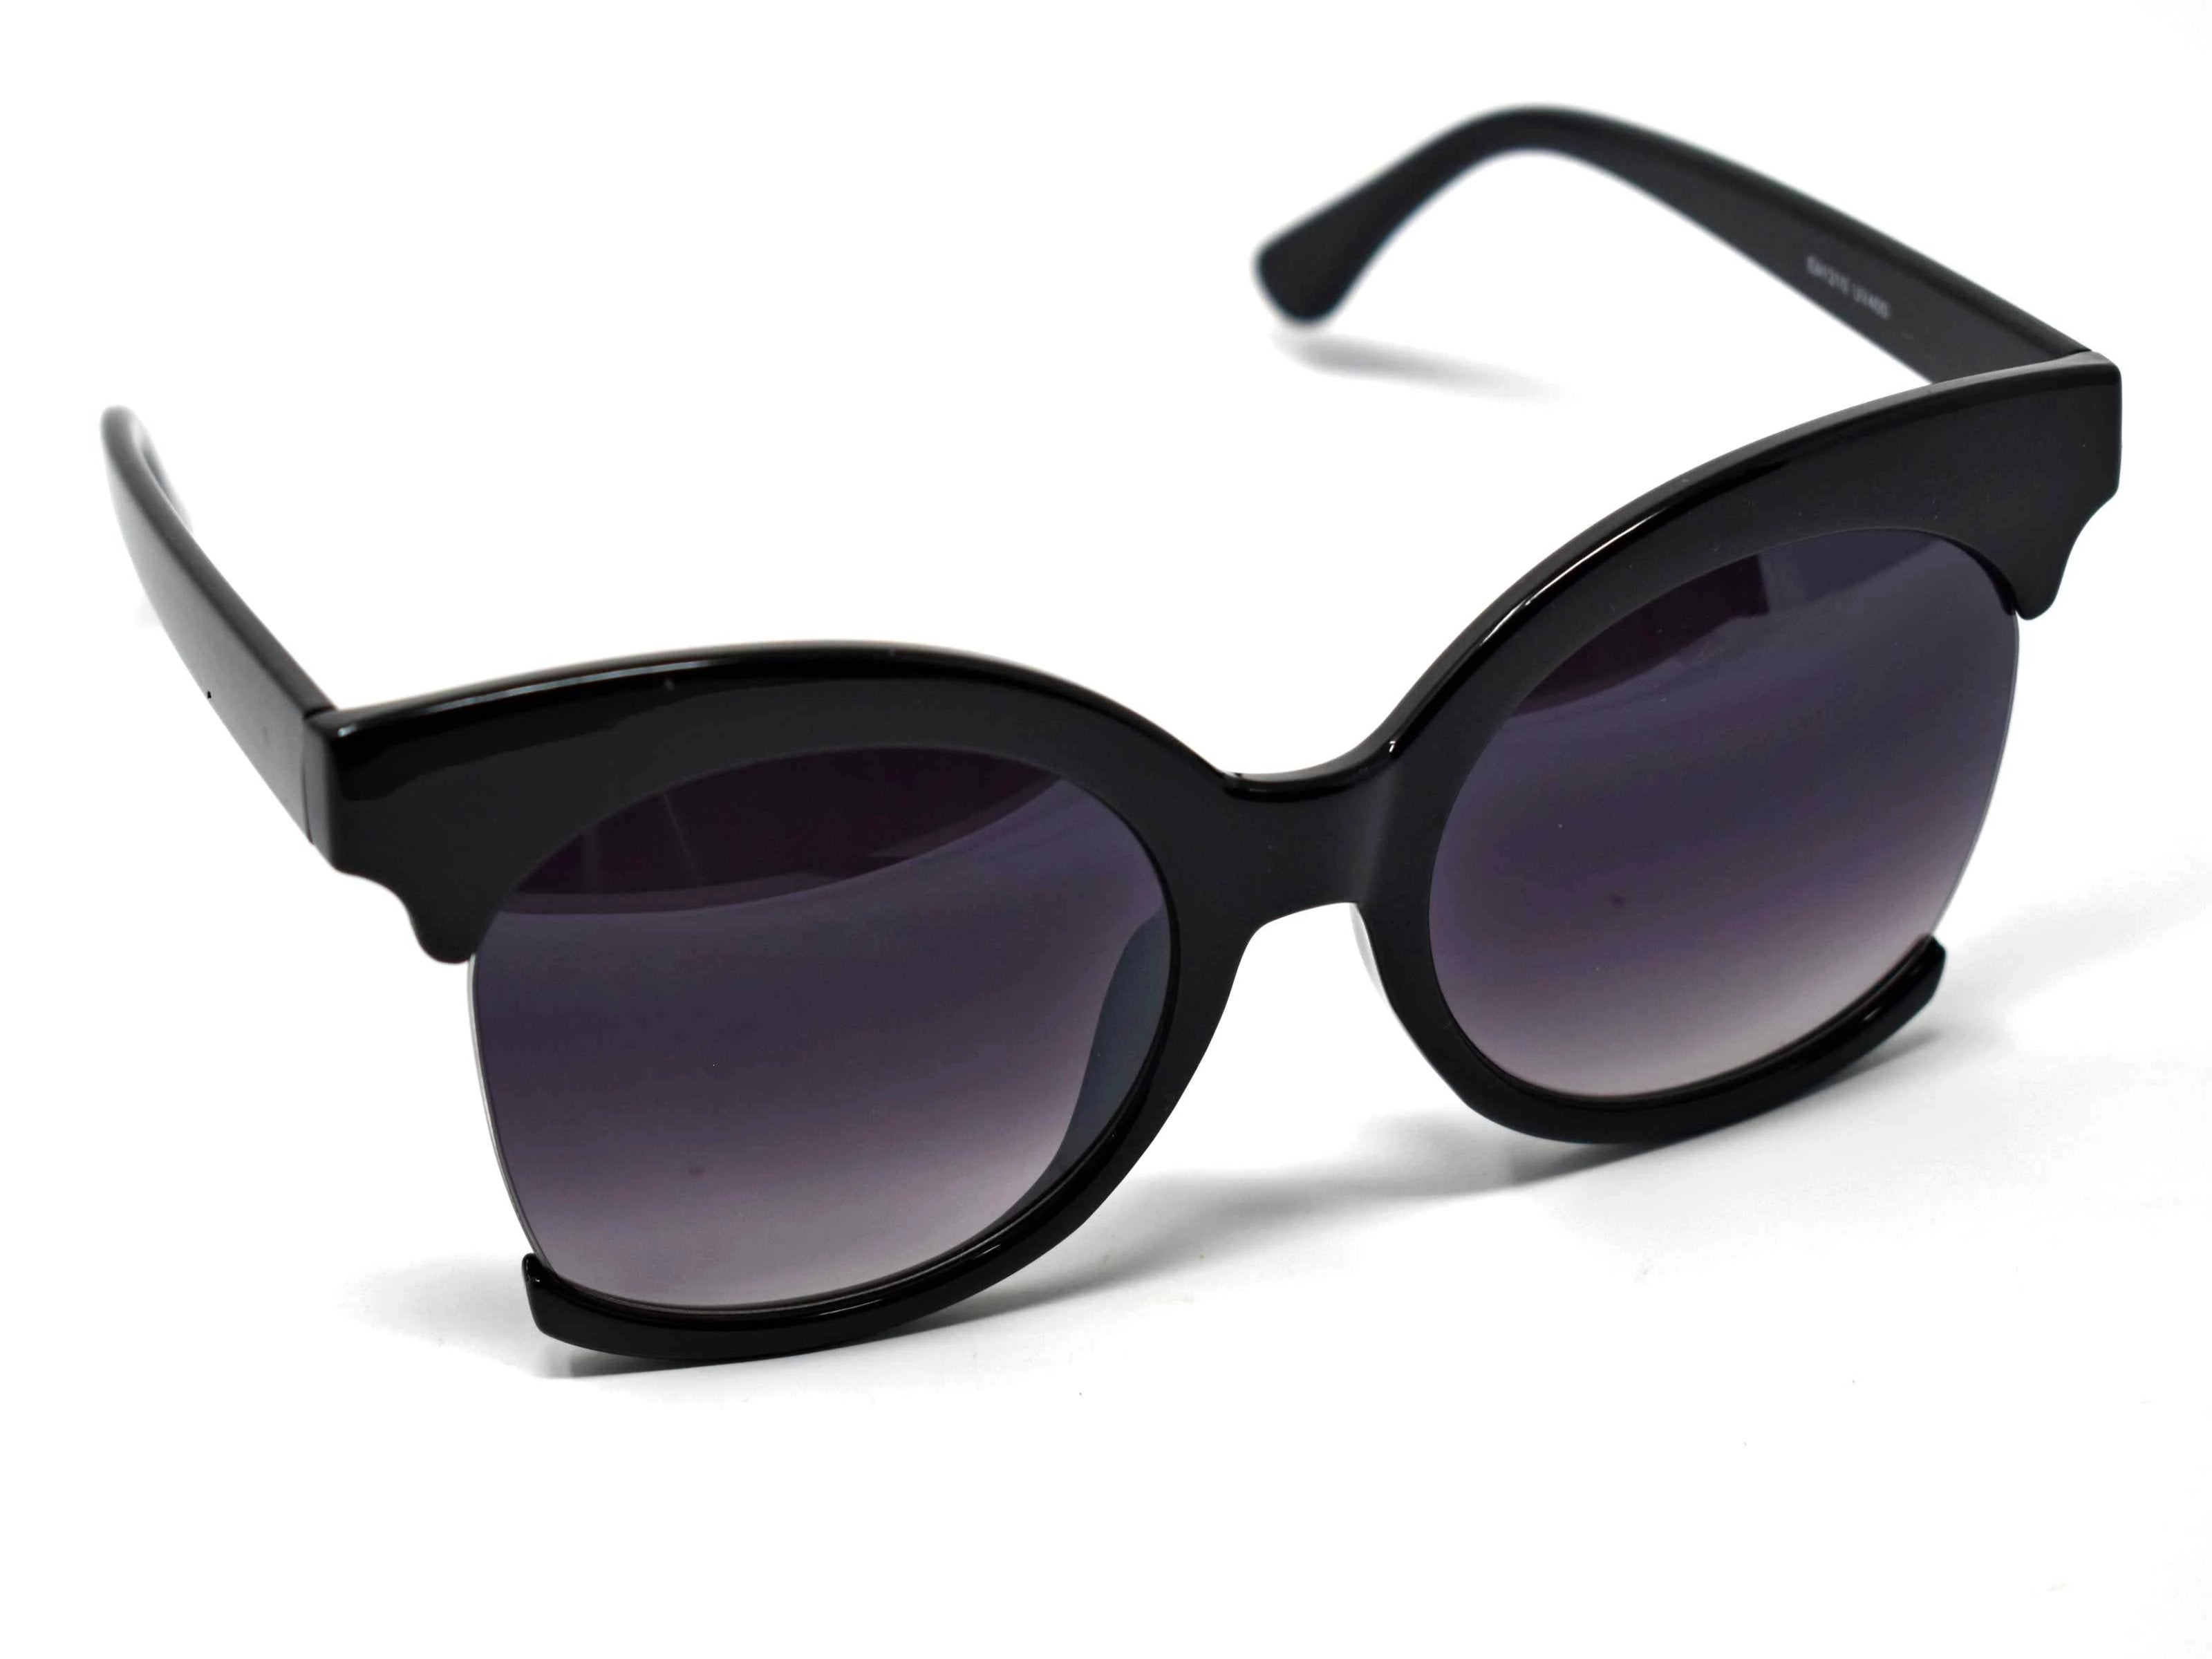 Primrose Black Lens Sunglasses Black